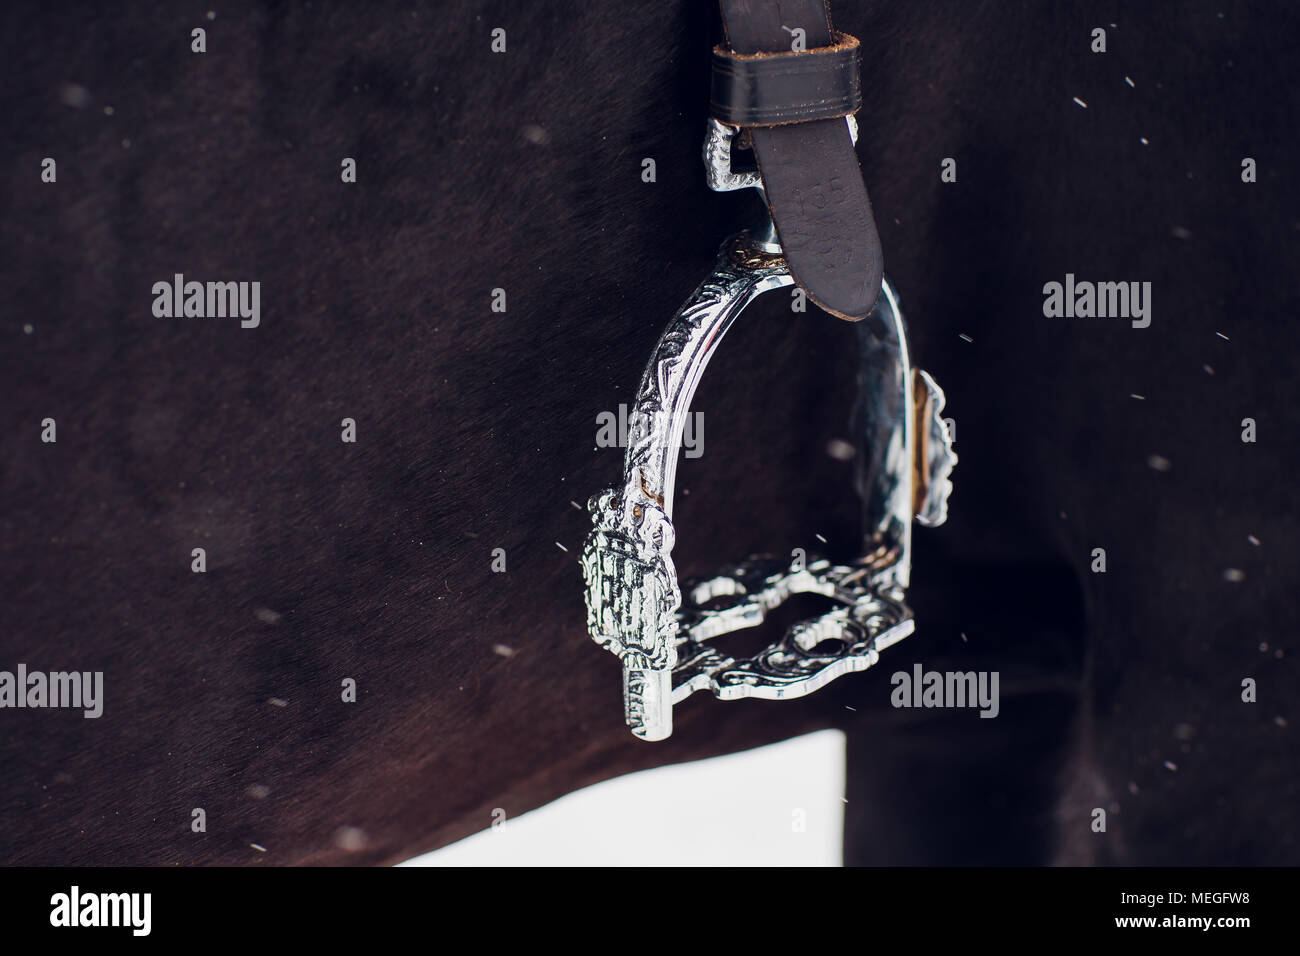 English saddle stirrup baroque type leathers and fender closeup - horseback riding saddle for sale - Stock Image